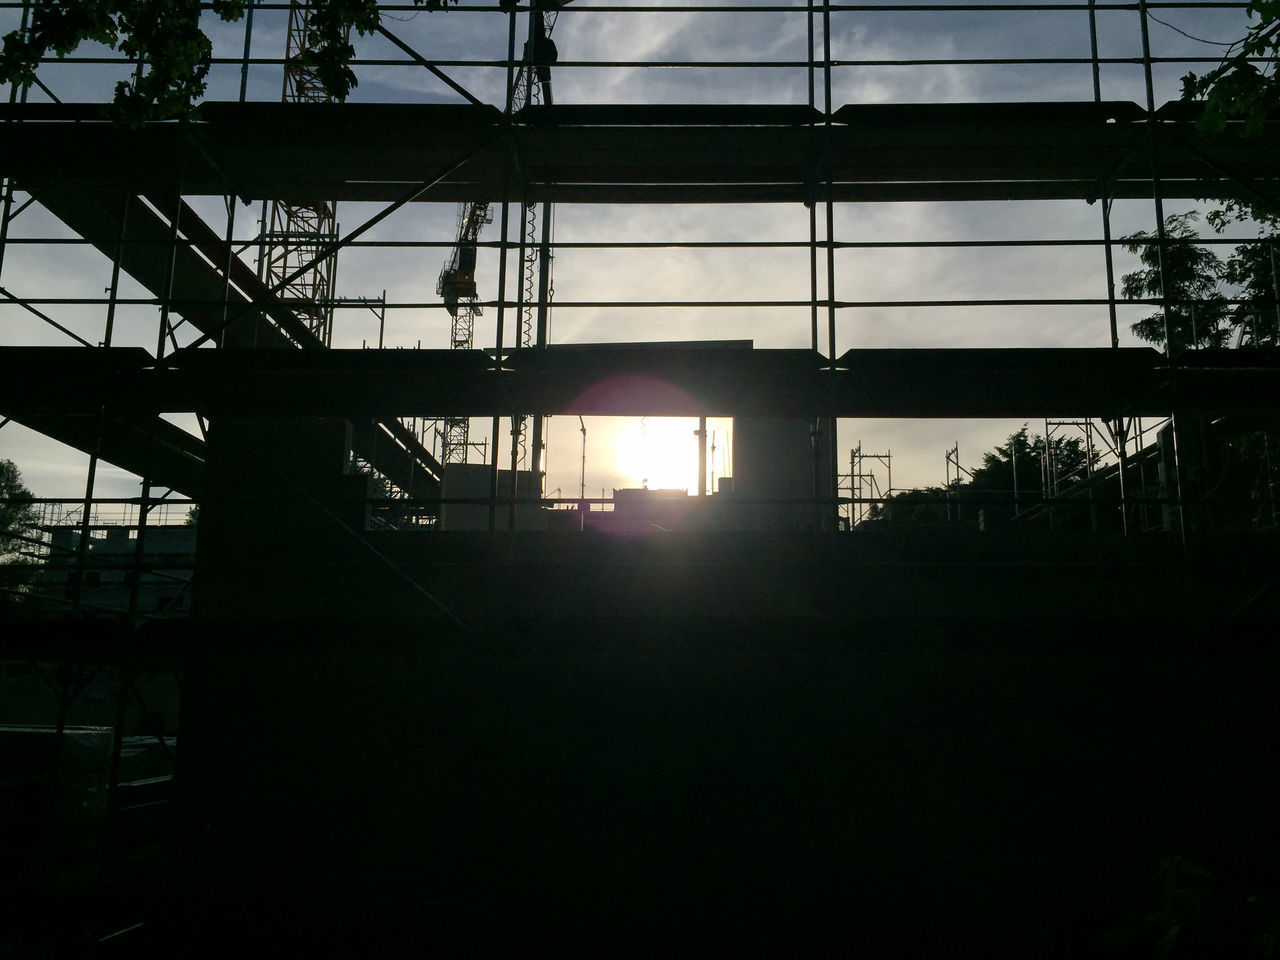 construction area in the evening Building Lot Building Site Building Yard Construction Area Construction Site Eve Evening Evening Light Evening Sky Evening Sun Evening Sunset Falsework Field No People Scaffold Scaffolding Silhouette Site Sky Sky And Clouds Sun Sunlight Sunset